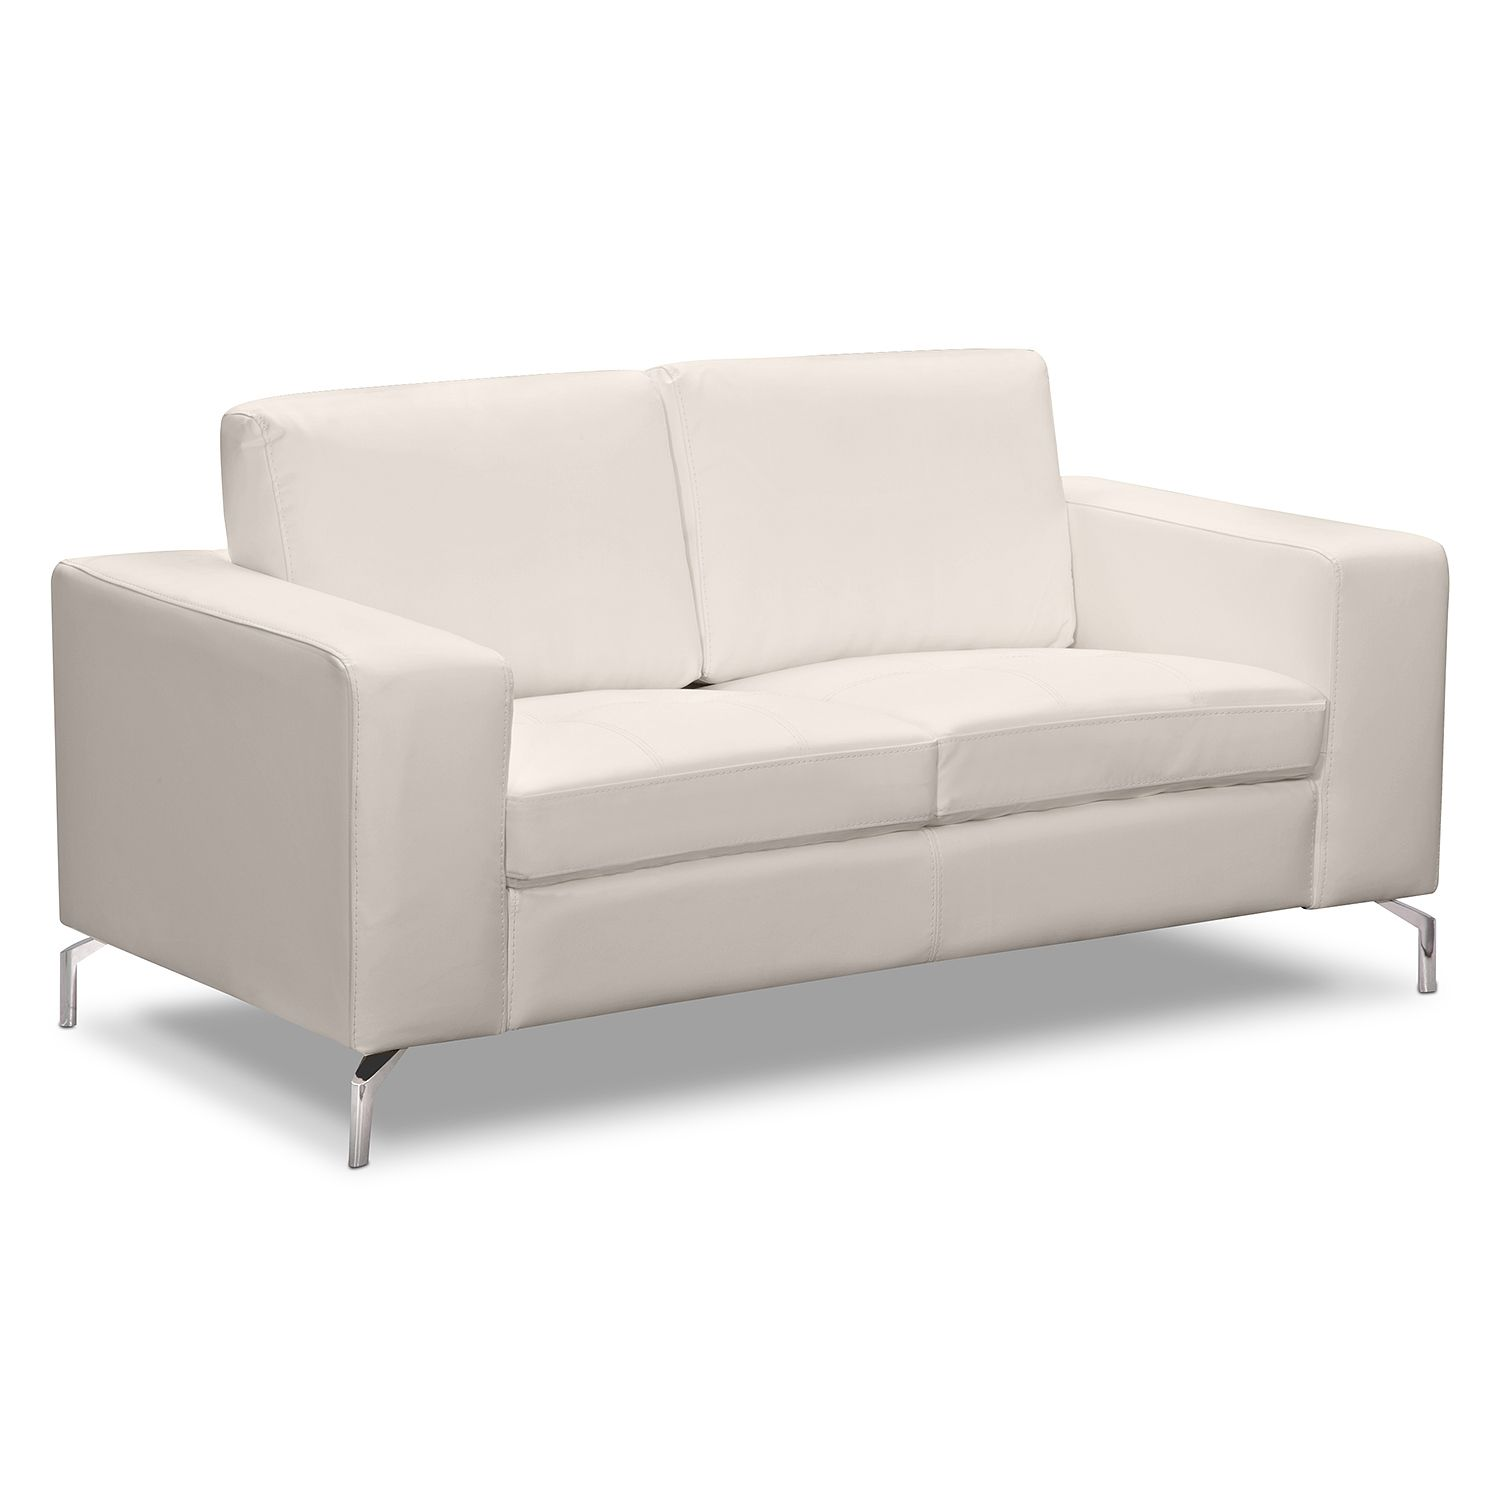 Casino Loveseat White Leather Sofas Love Seat Ikea Leather Sofa